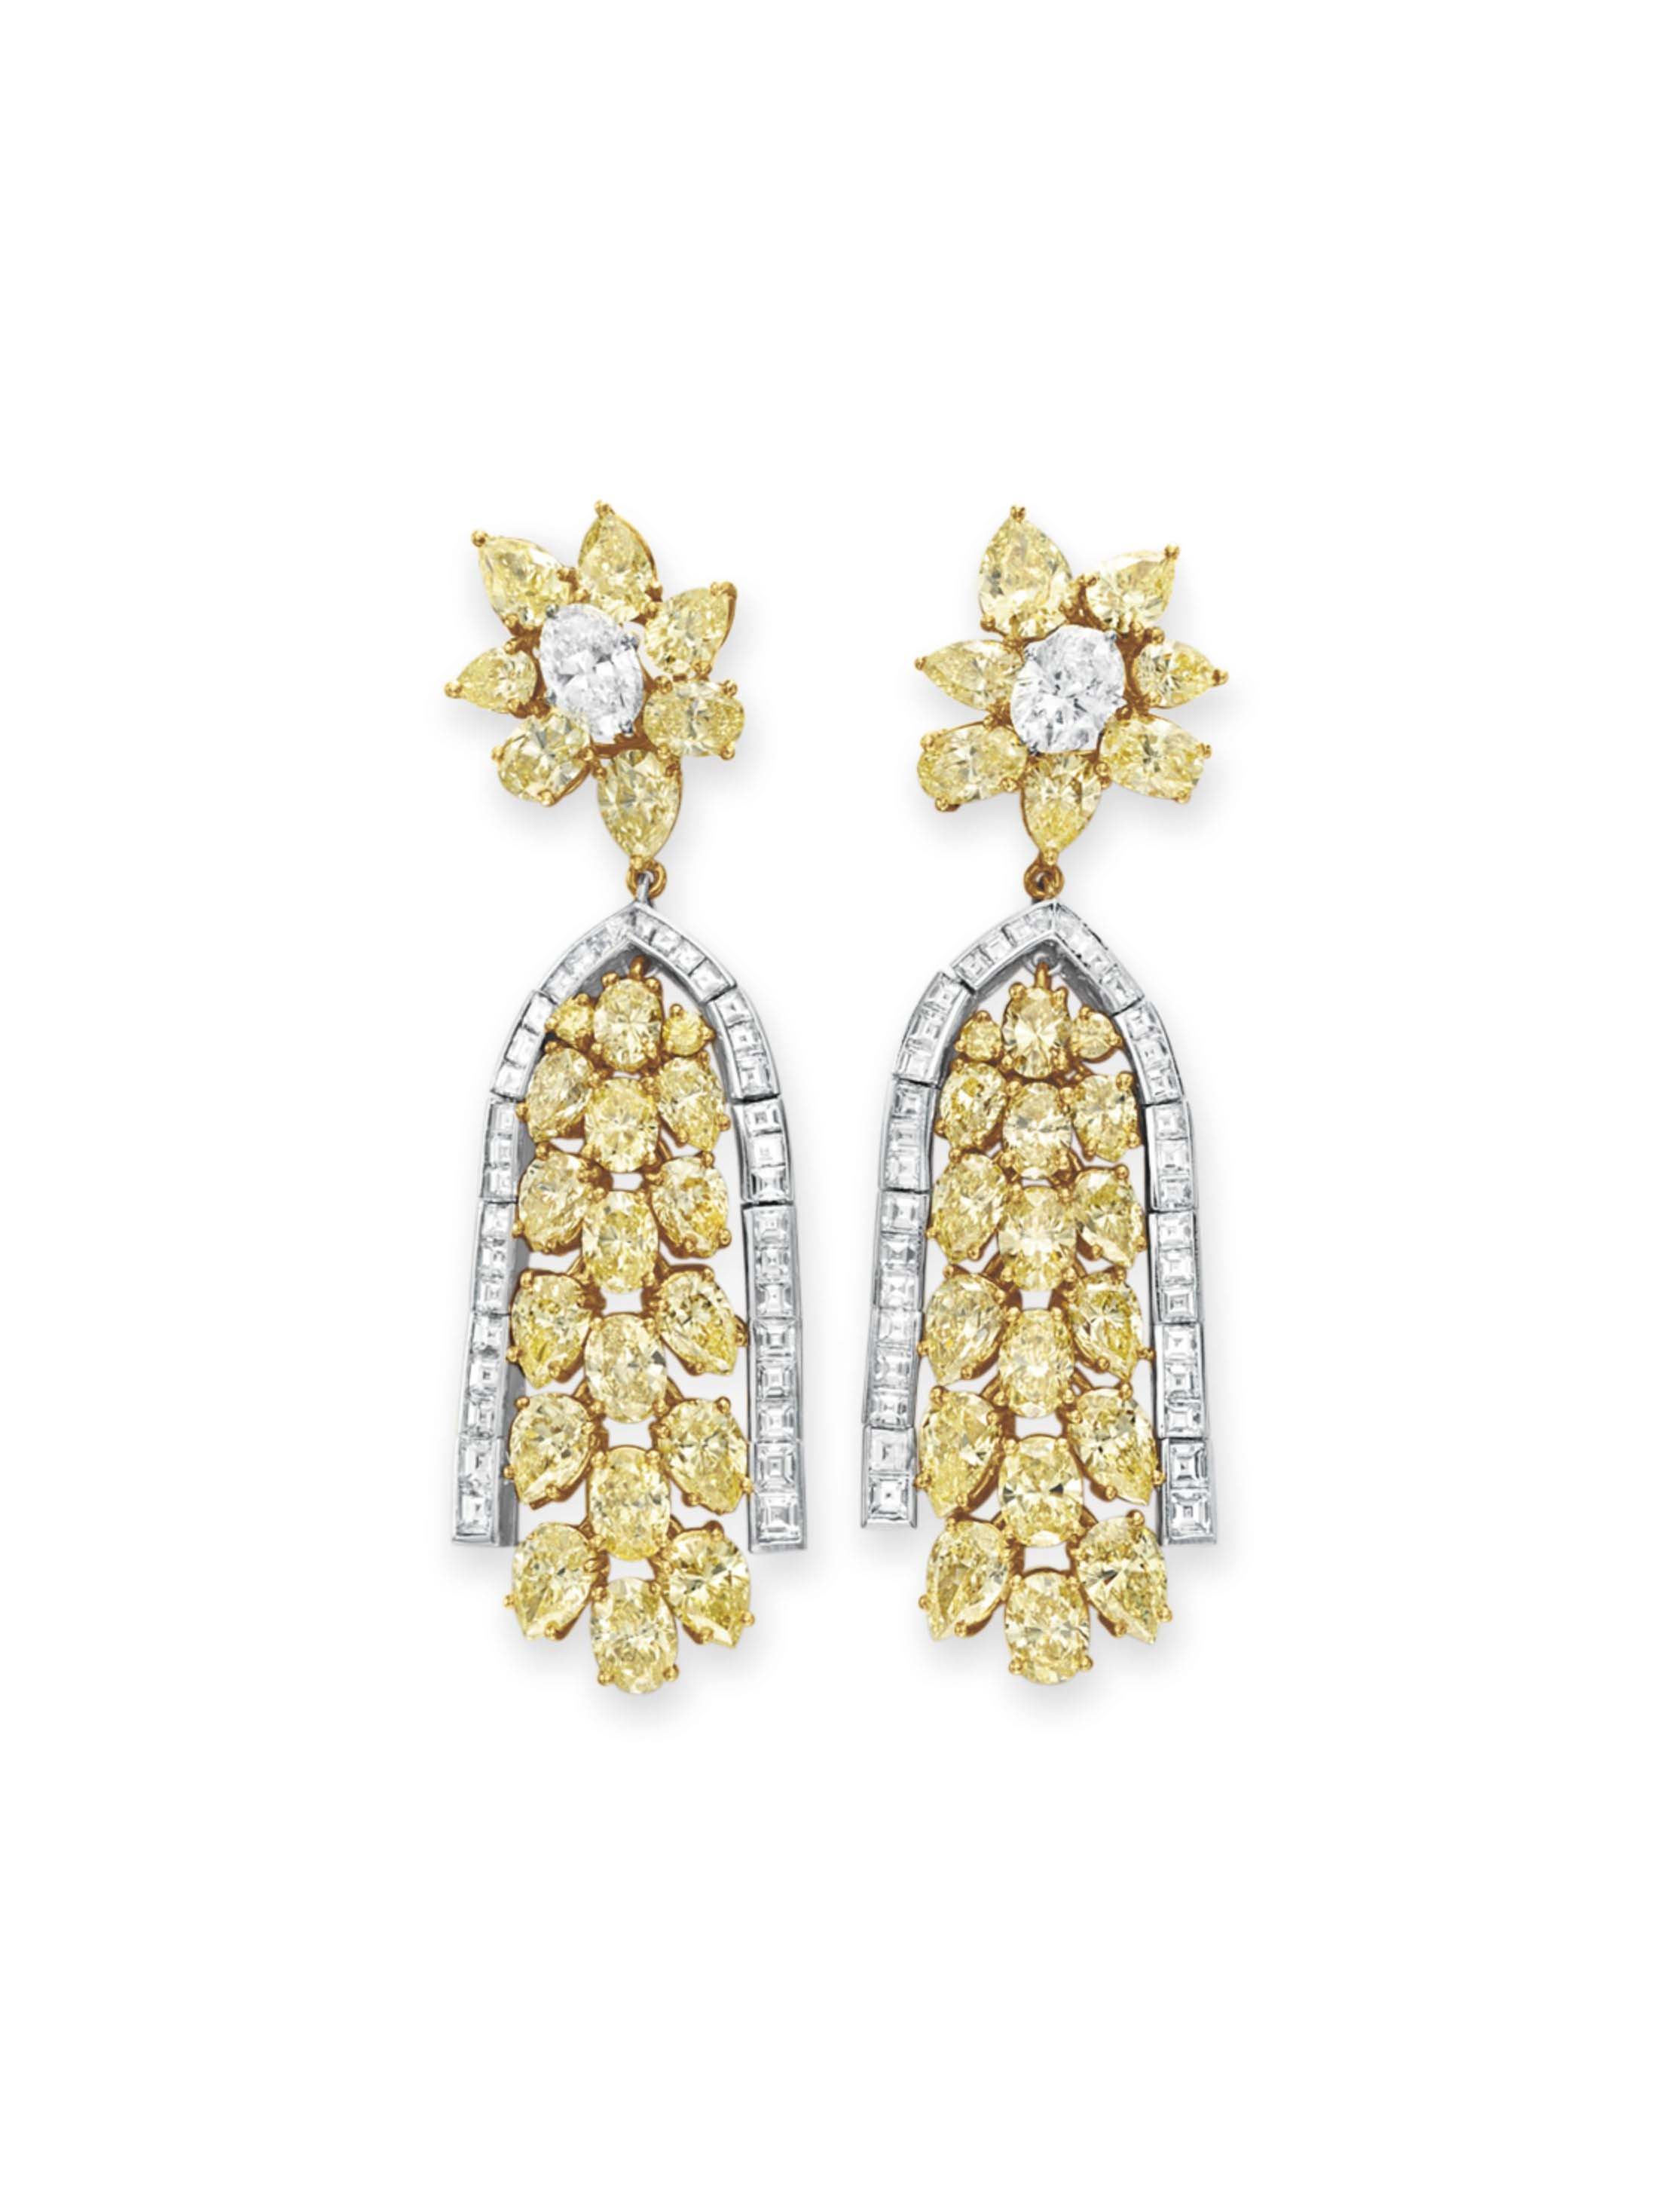 A PAIR OF COLORED DIAMOND AND DIAMOND EAR PENDANTS, BY DAVID MORRIS